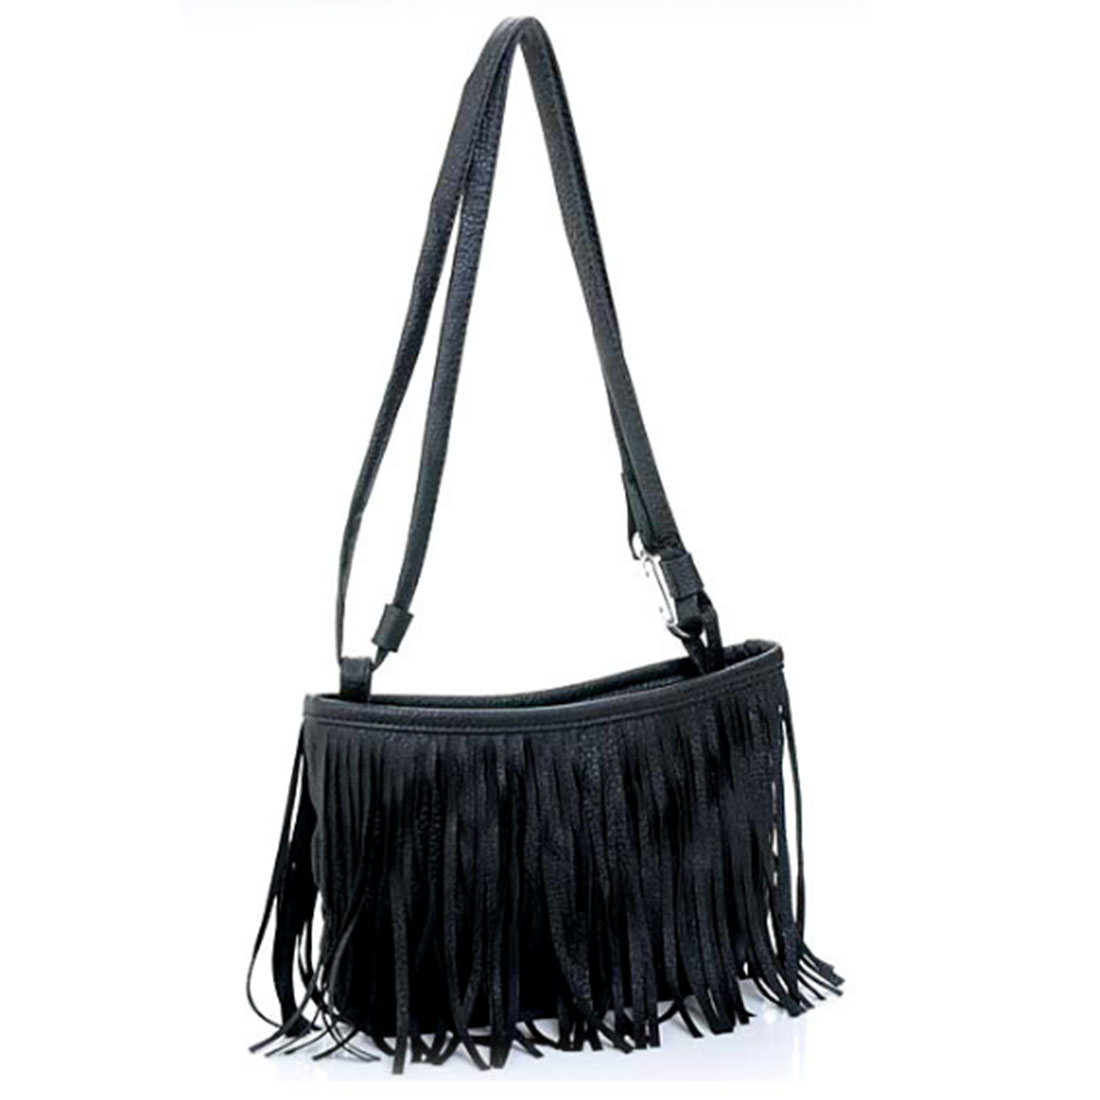 Hot Women Mini PU Leather Bags Women's Punk Satchel Tassel Fringe Shoulder Messenger Bags Crossbody Bags Femininas